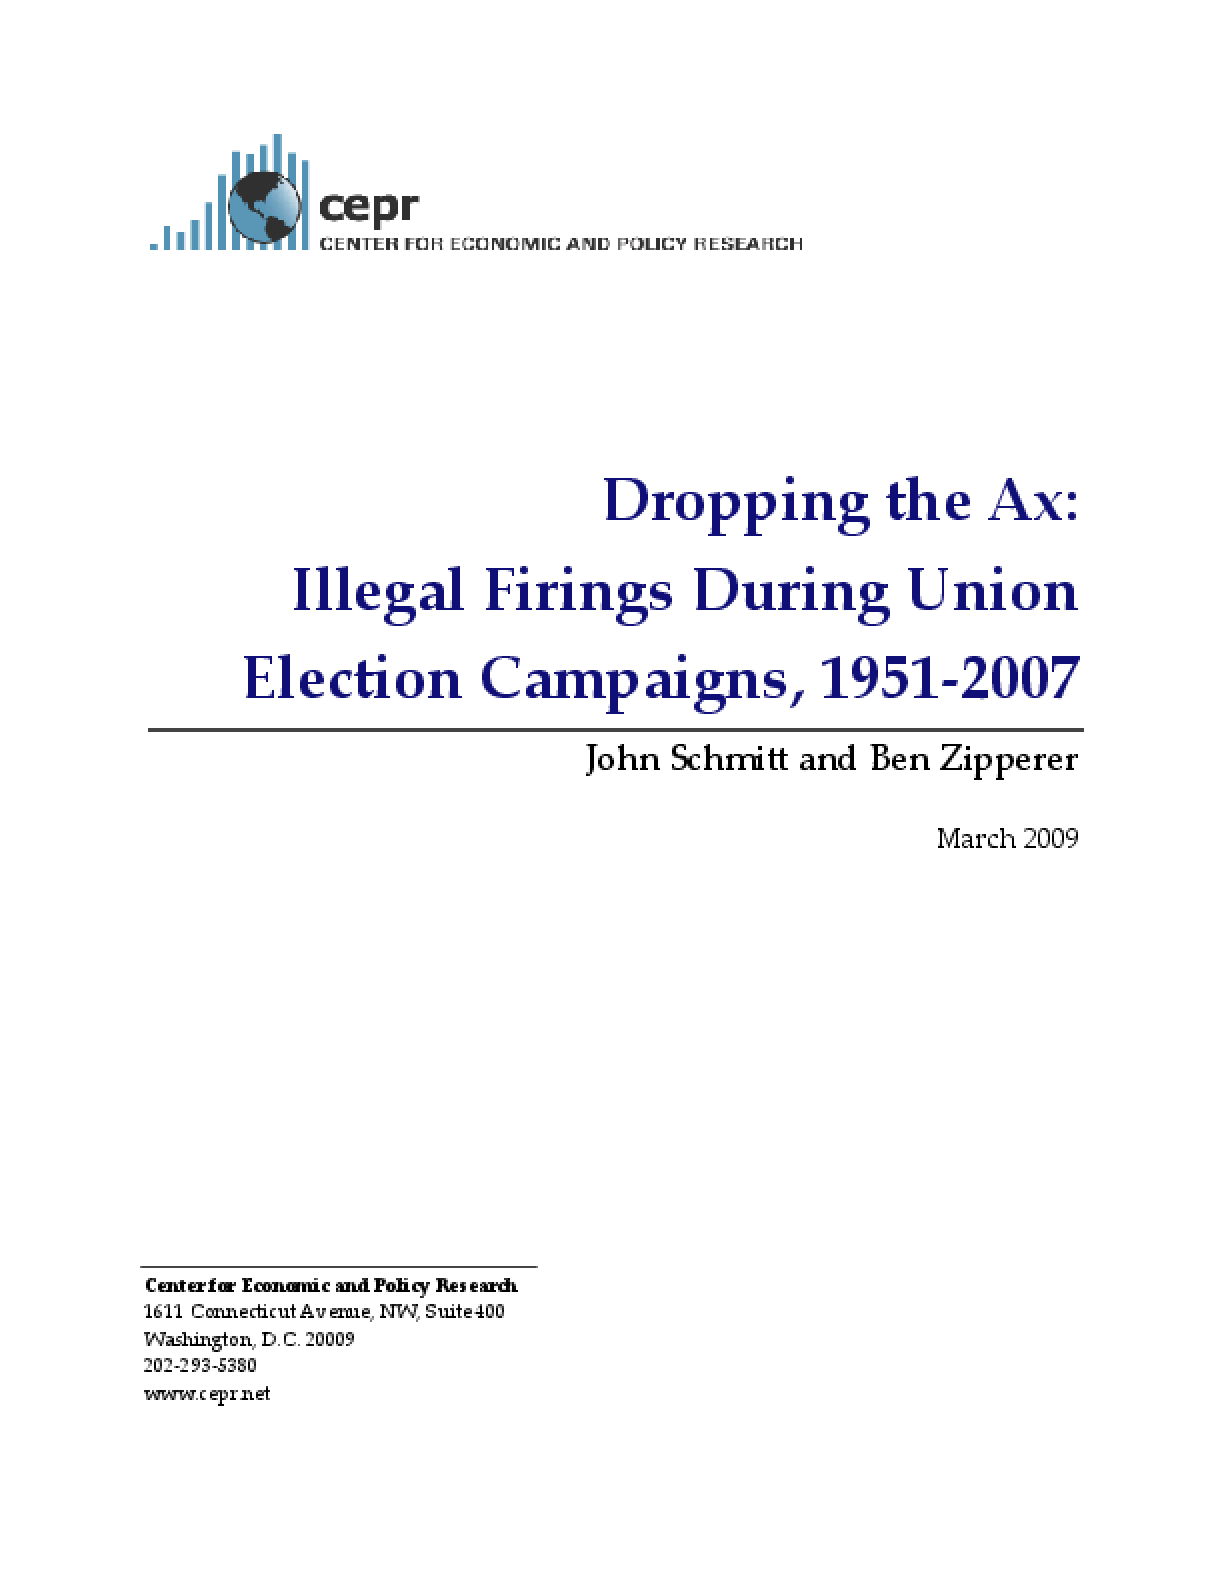 Dropping the Ax: Illegal Firings During Union Election Campaigns, 1951-2007